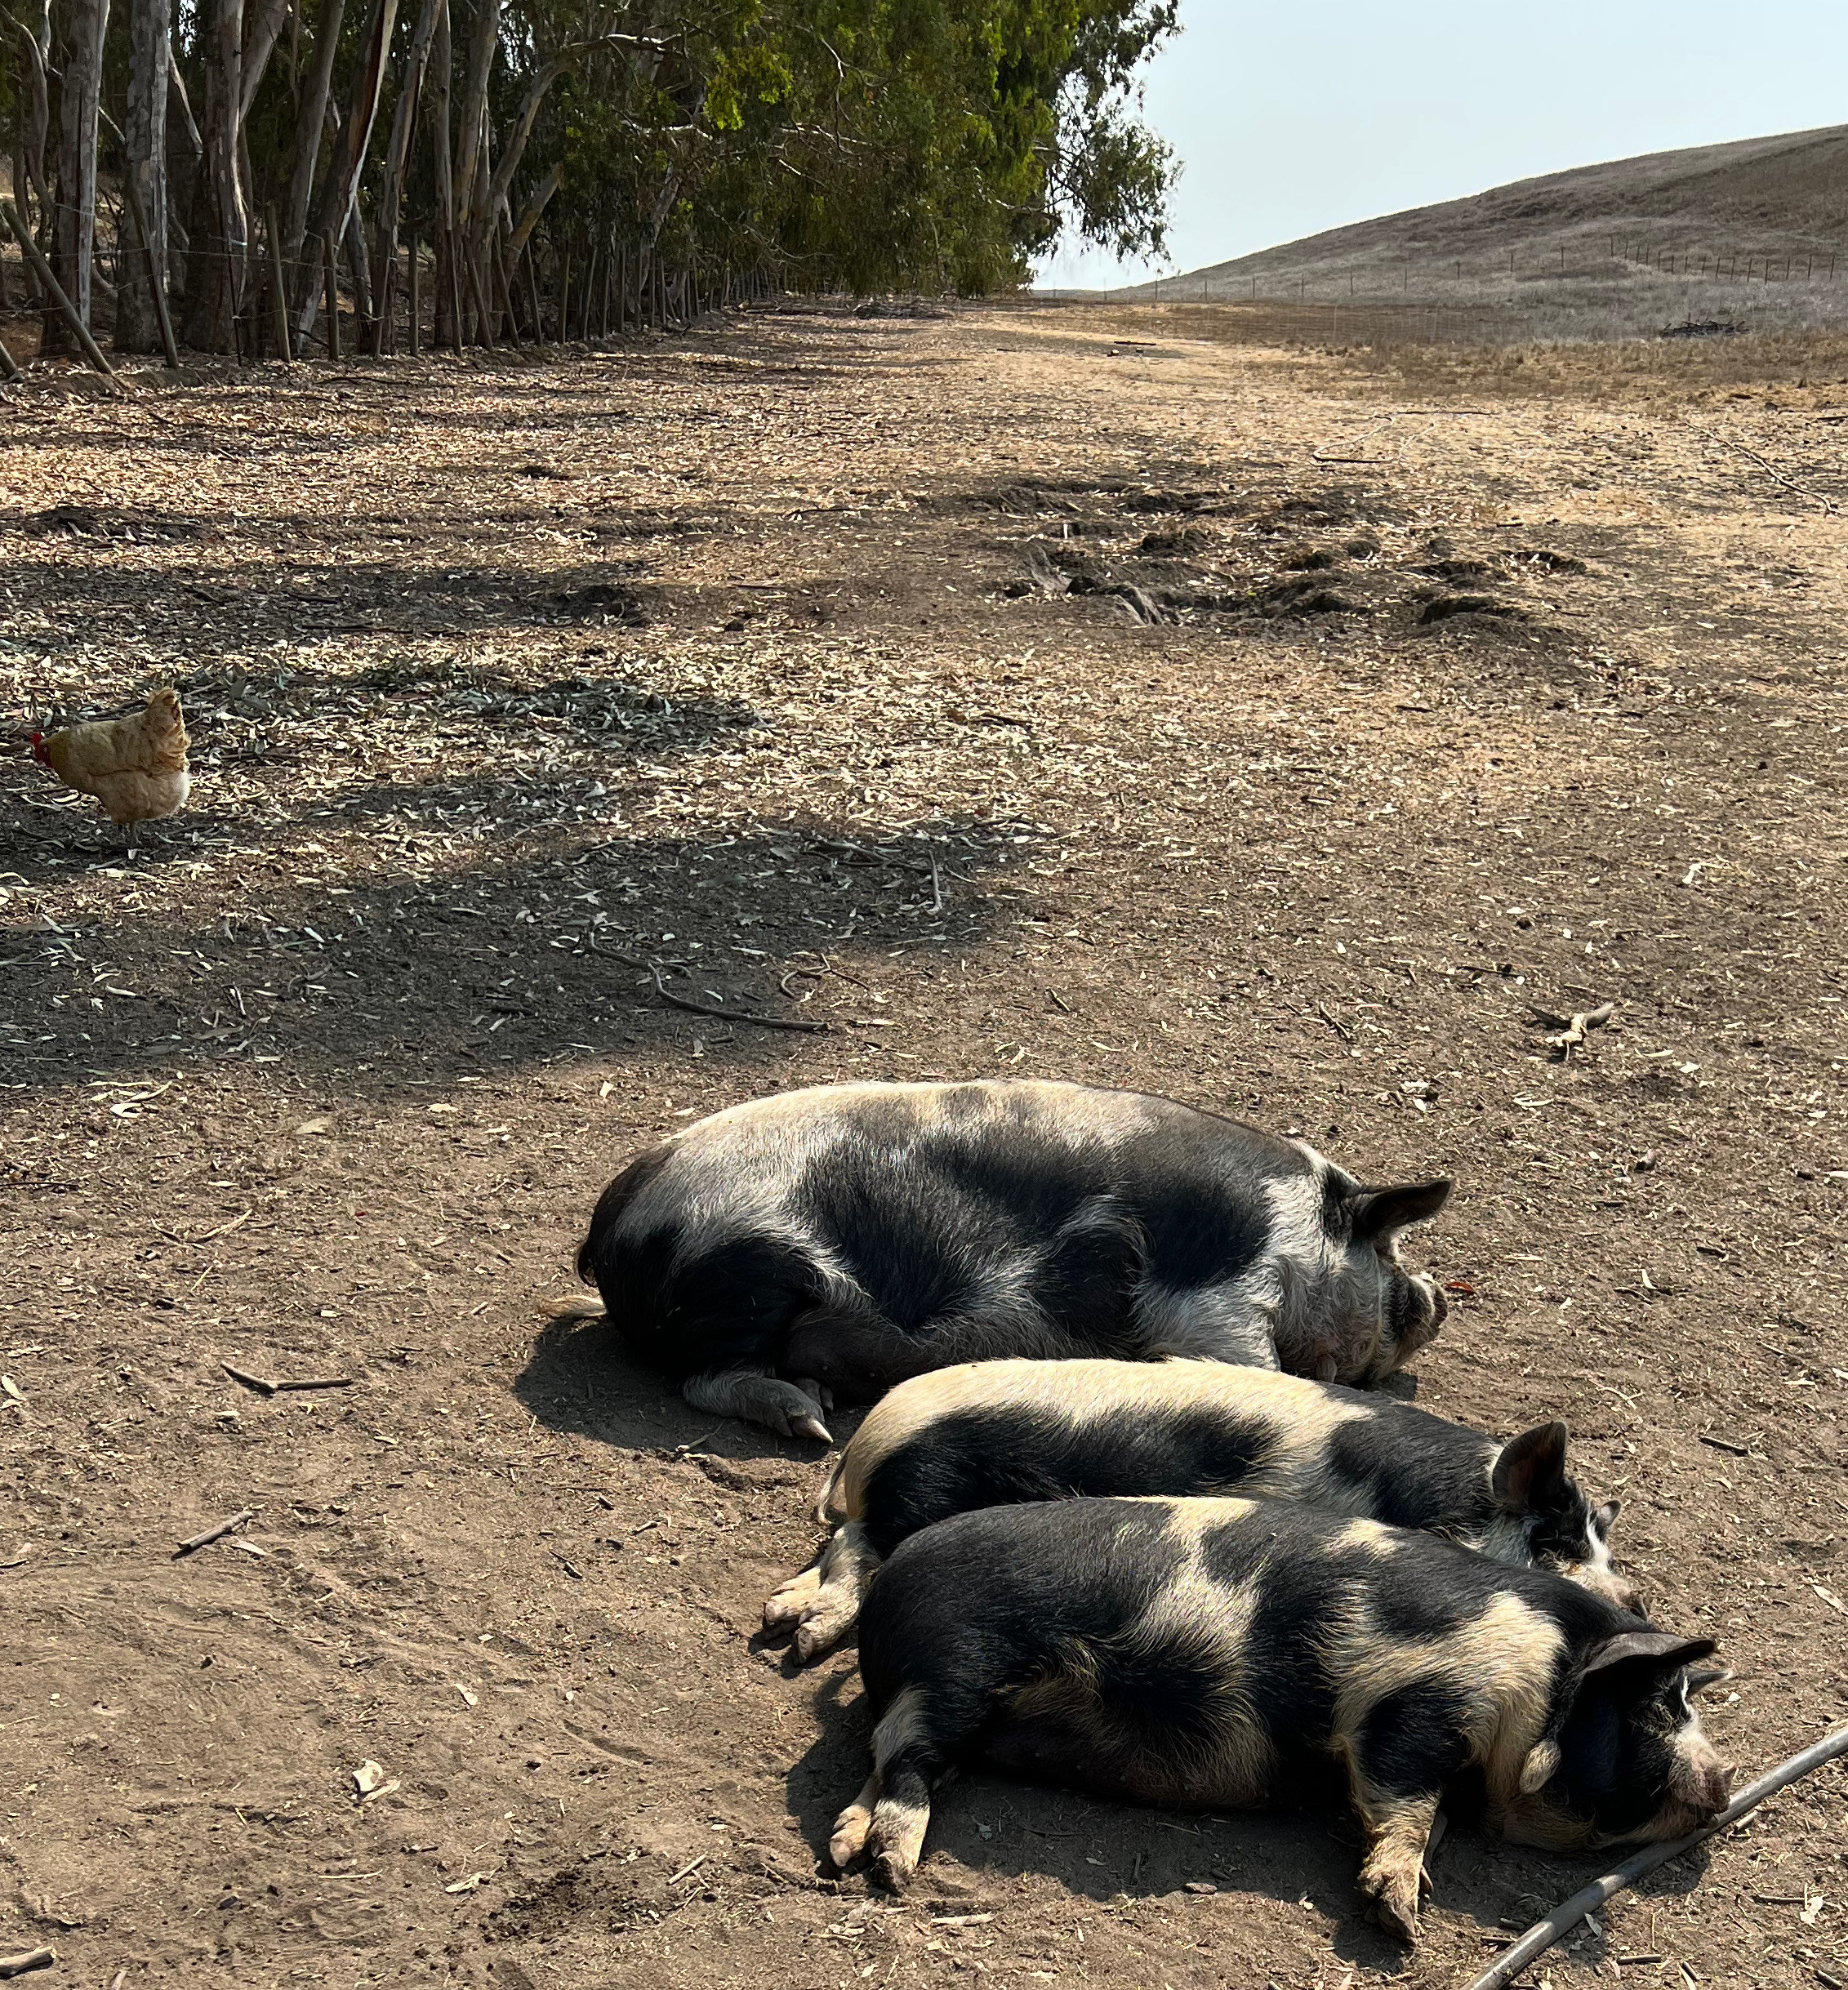 A stack of pigs